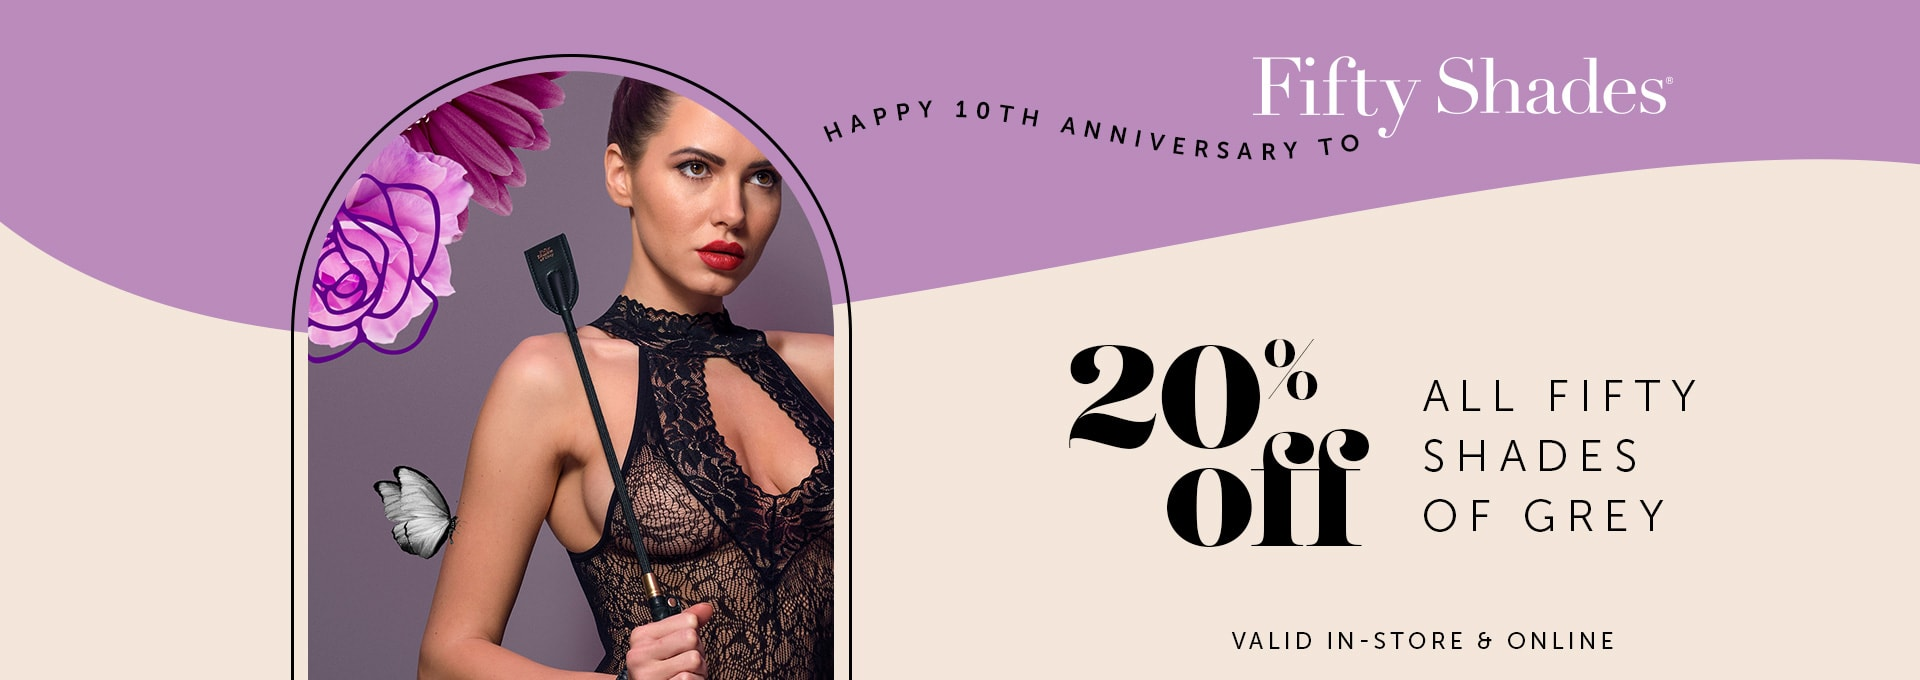 20% OFF Fifty Shades of Grey